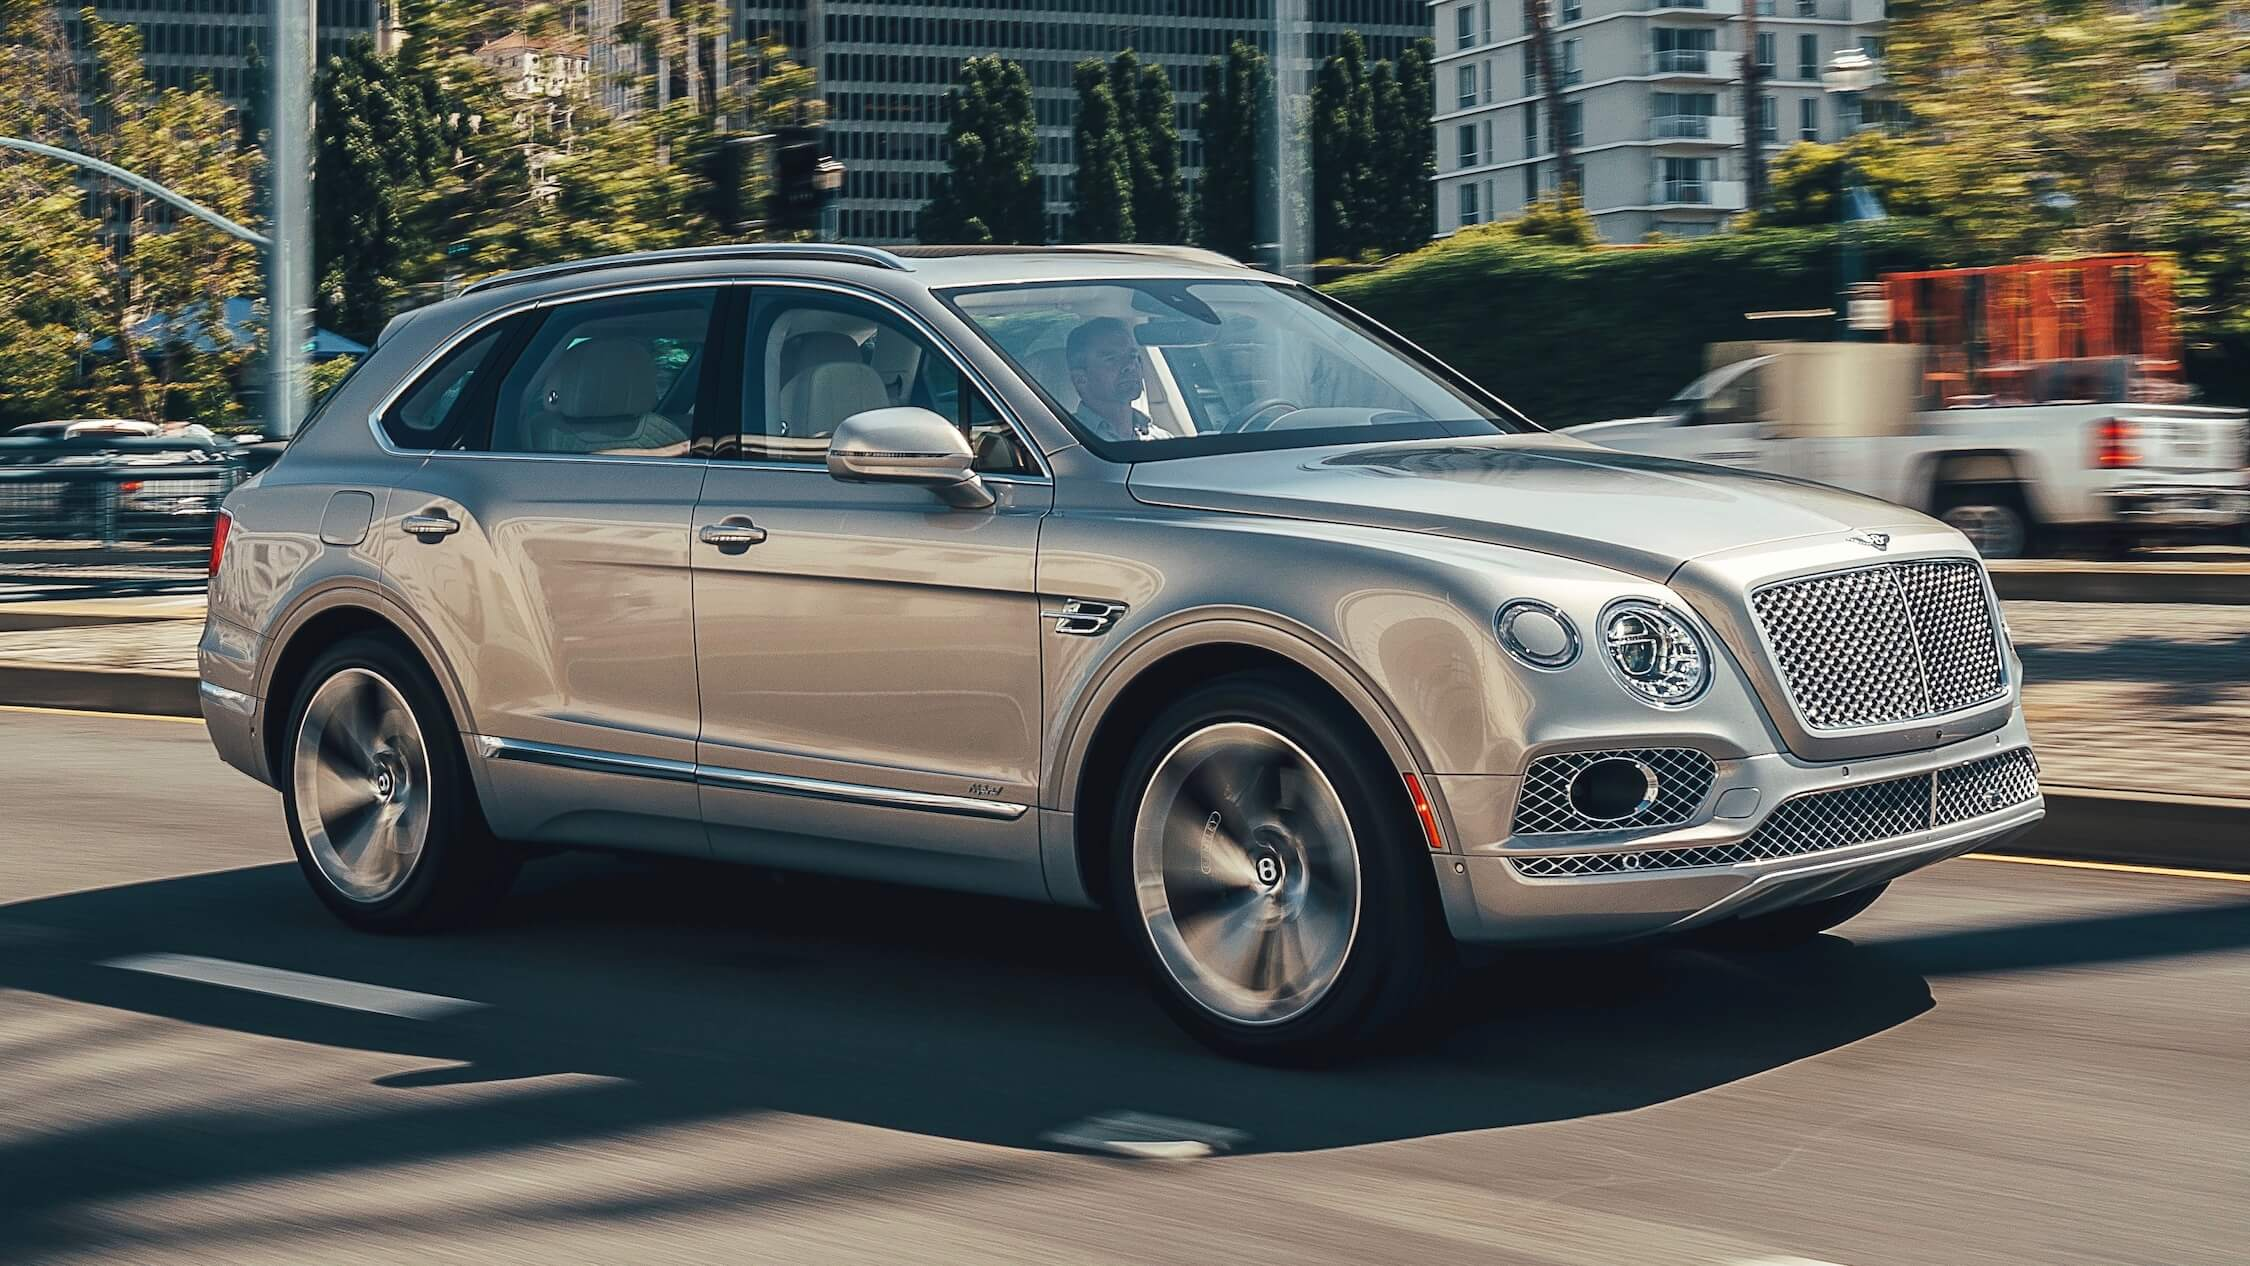 grijze Bentley Bentayga